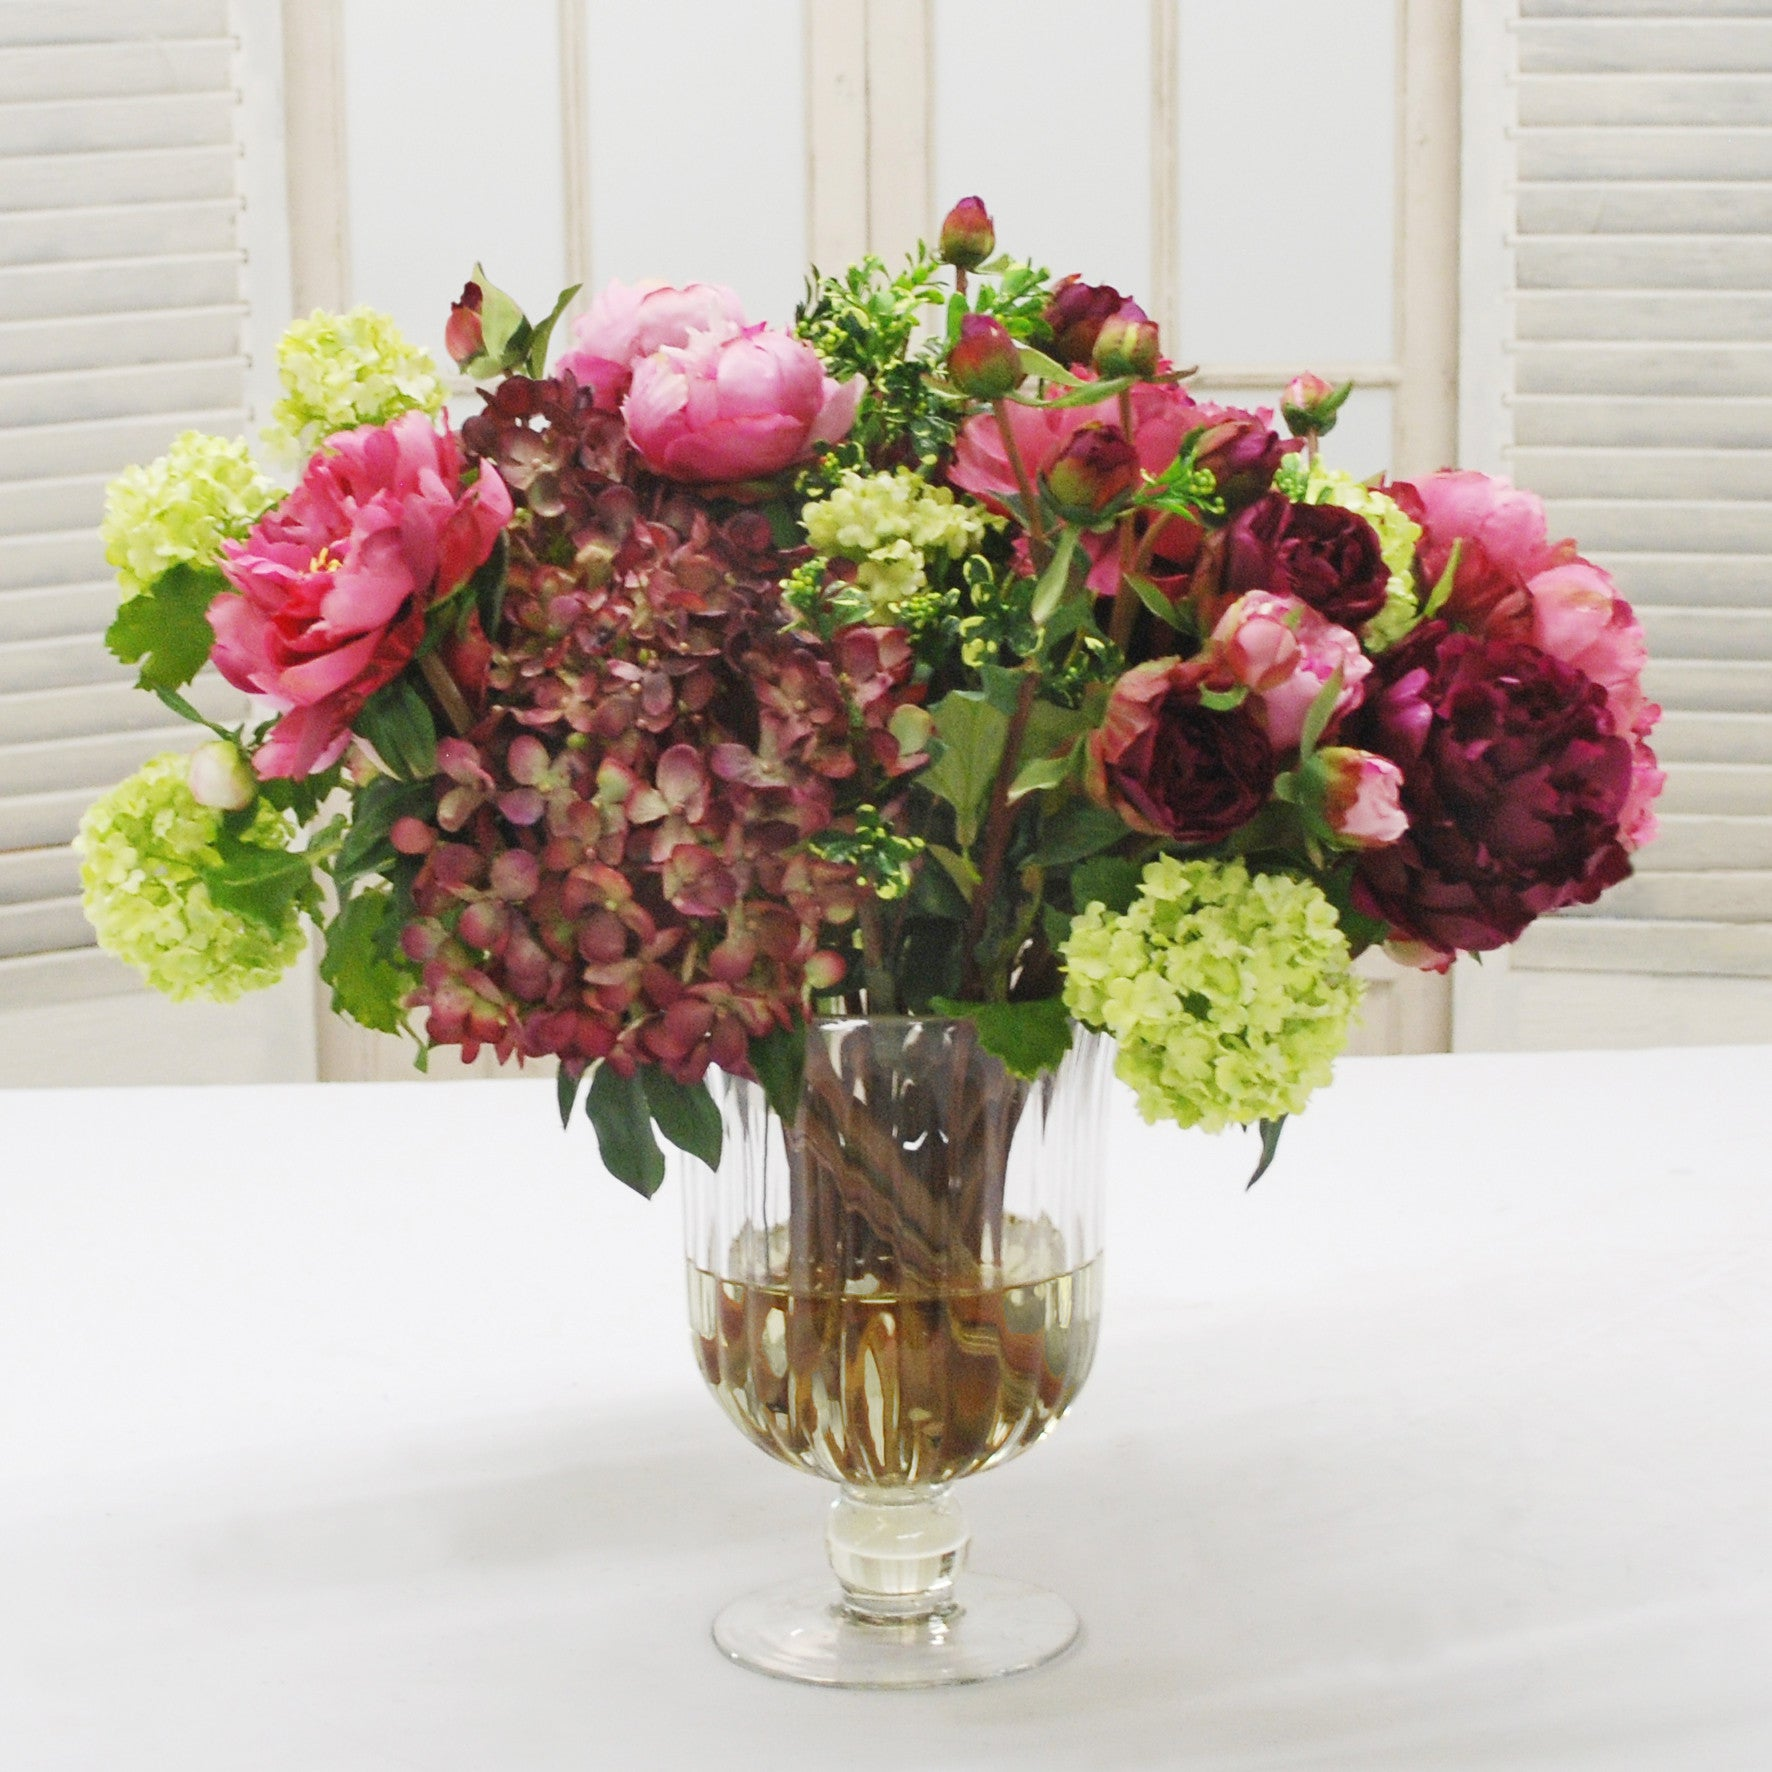 MIX FLORAL IN WINE GLASS VASE (WHD022-OHGR) - Winward Home silk flower arrangements